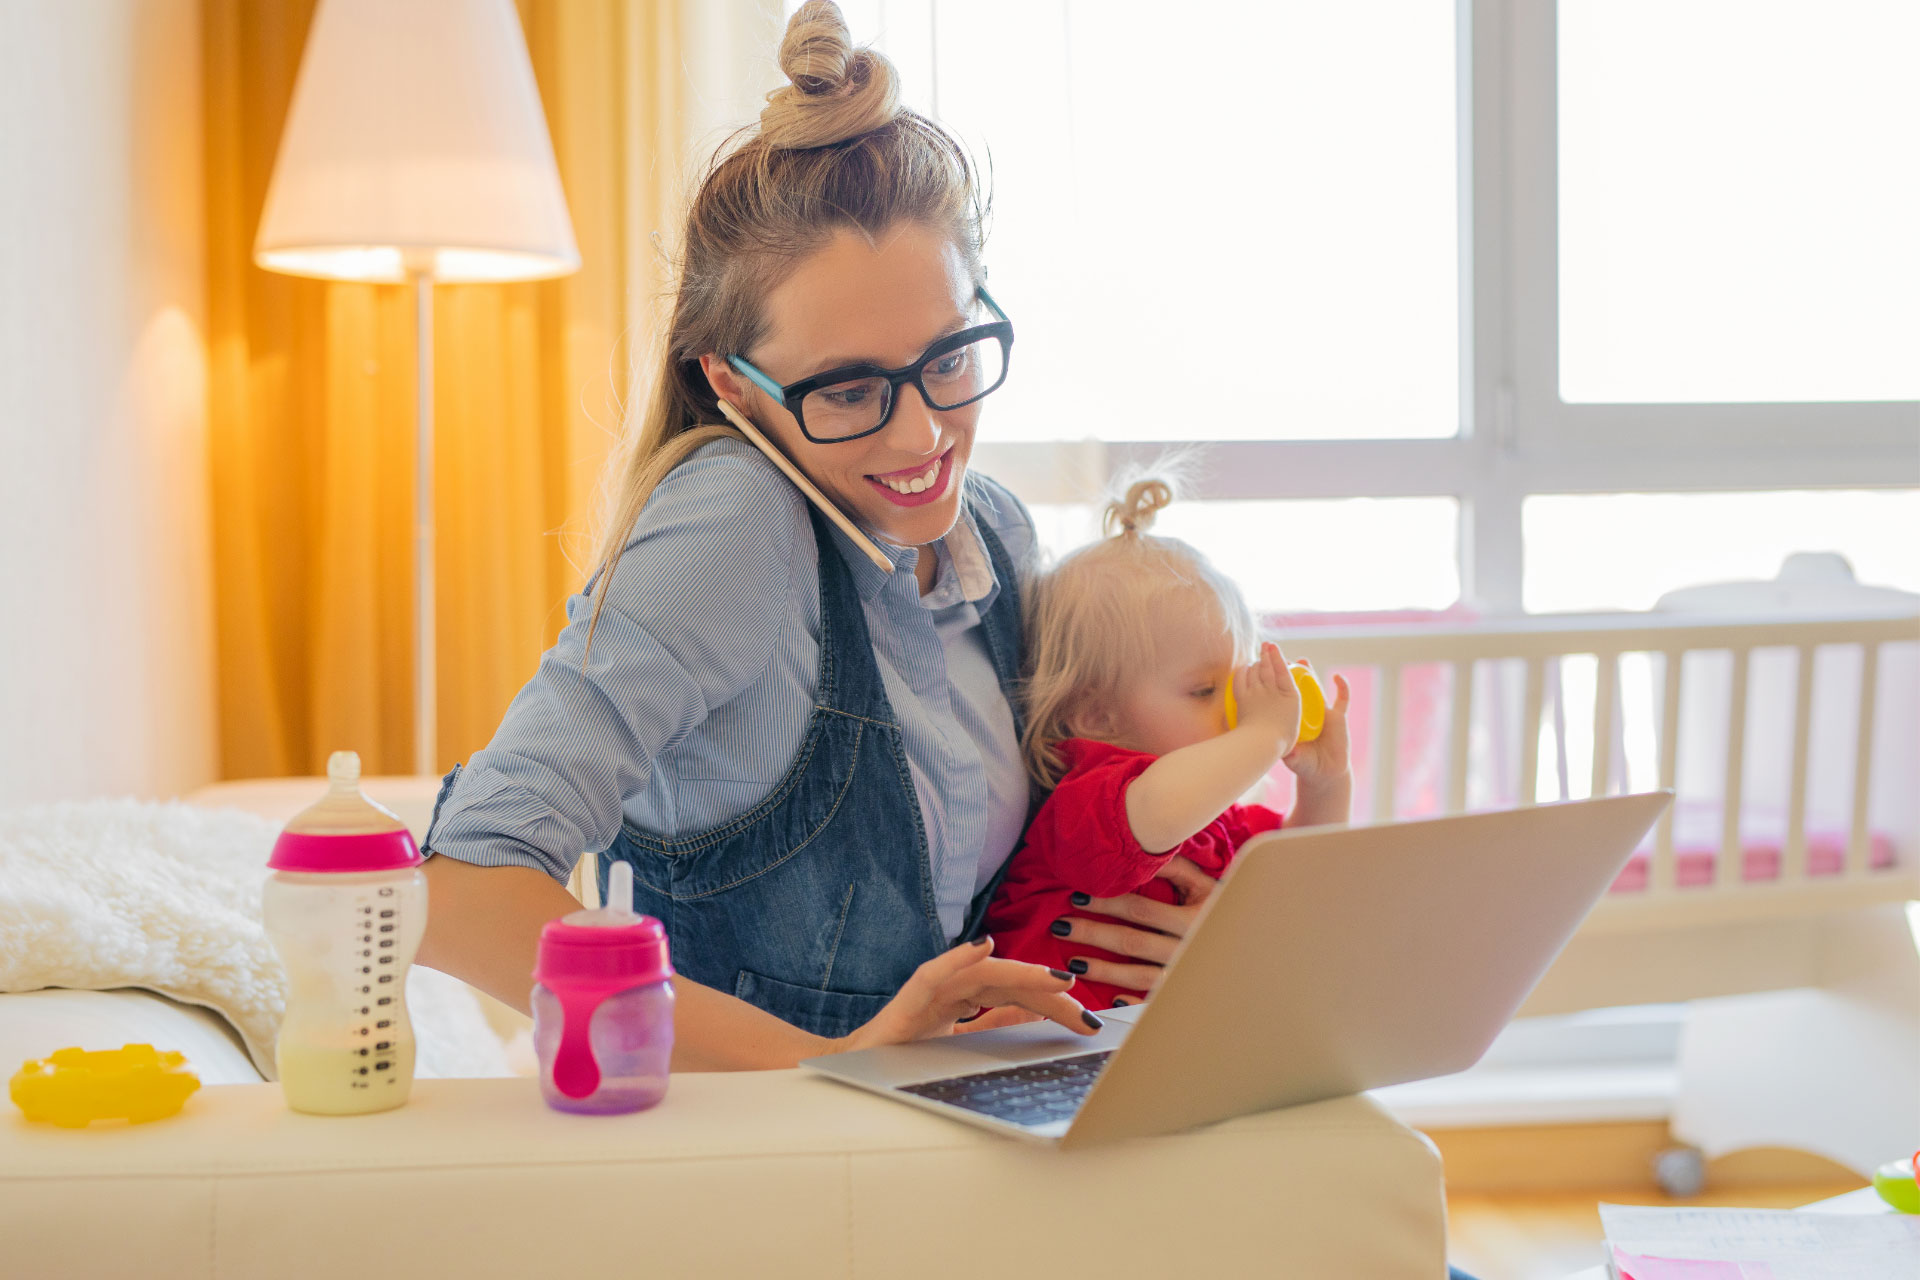 Smiling mother multitasking at home as she is sat on a couch working on her laptop, talking on her phone and holding her baby who is sipping from a cup